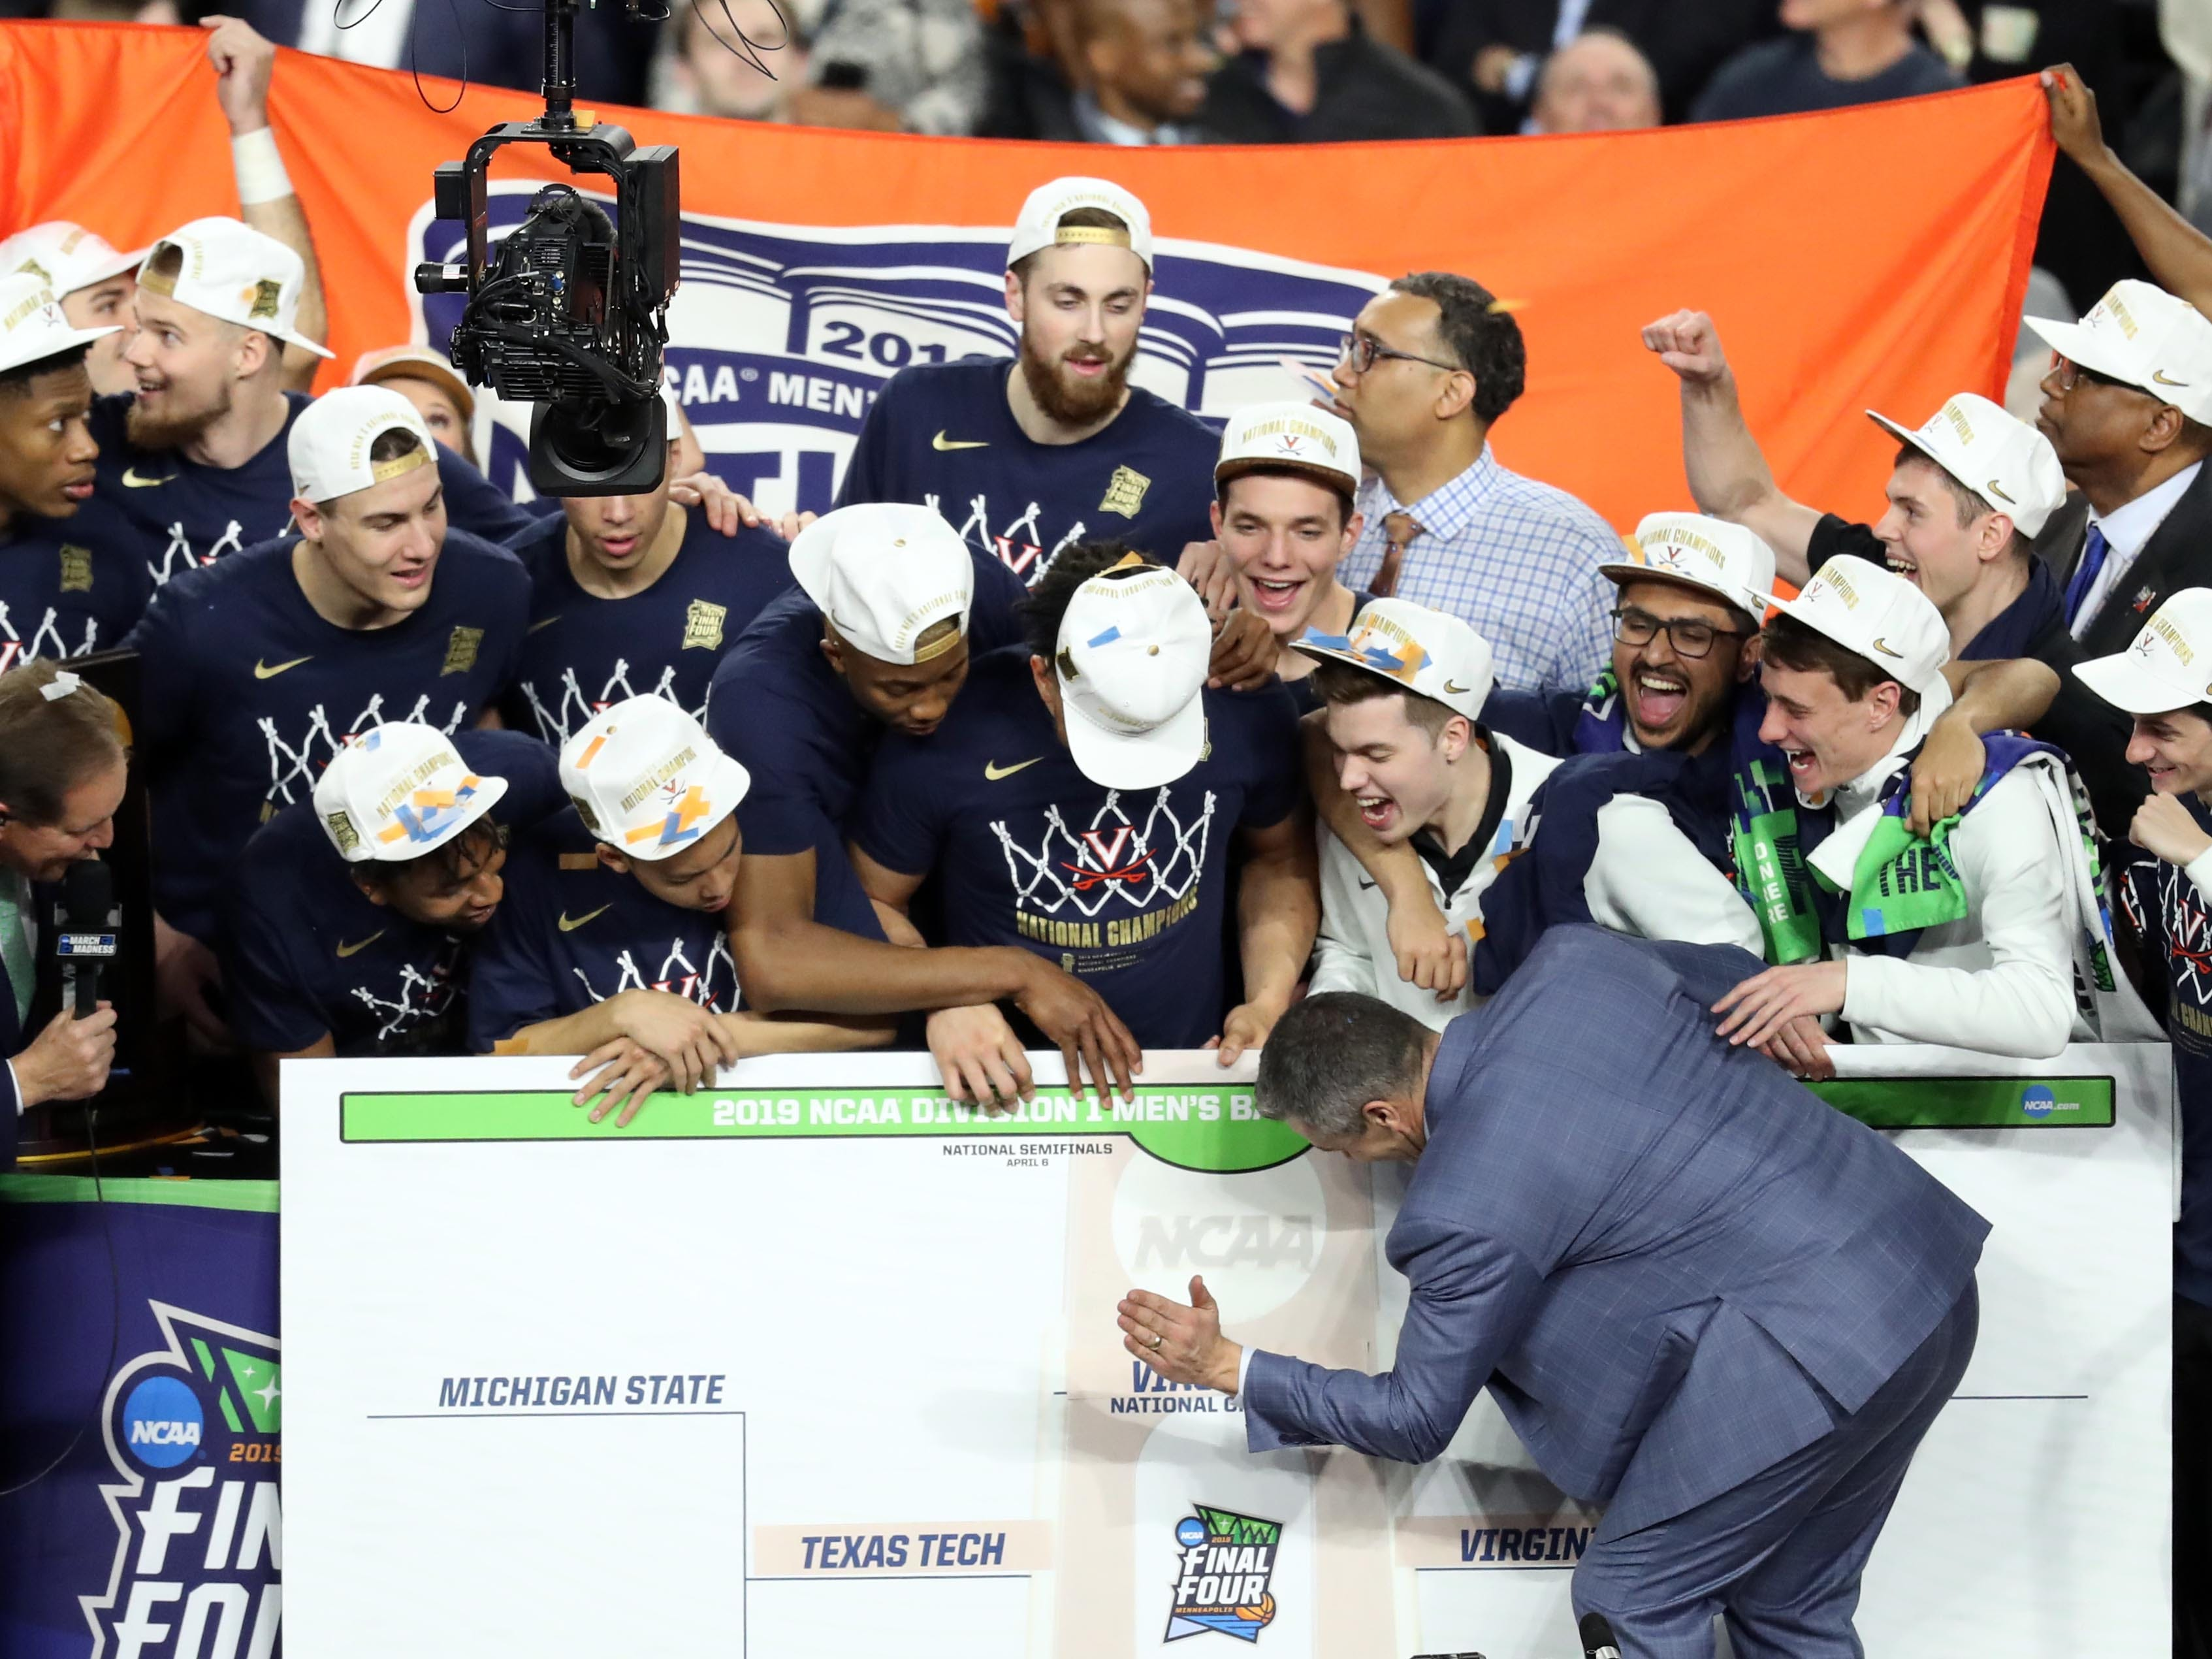 Virginia coach Tony Bennett and players celebrate after defeating Texas Tech  in the championship game.